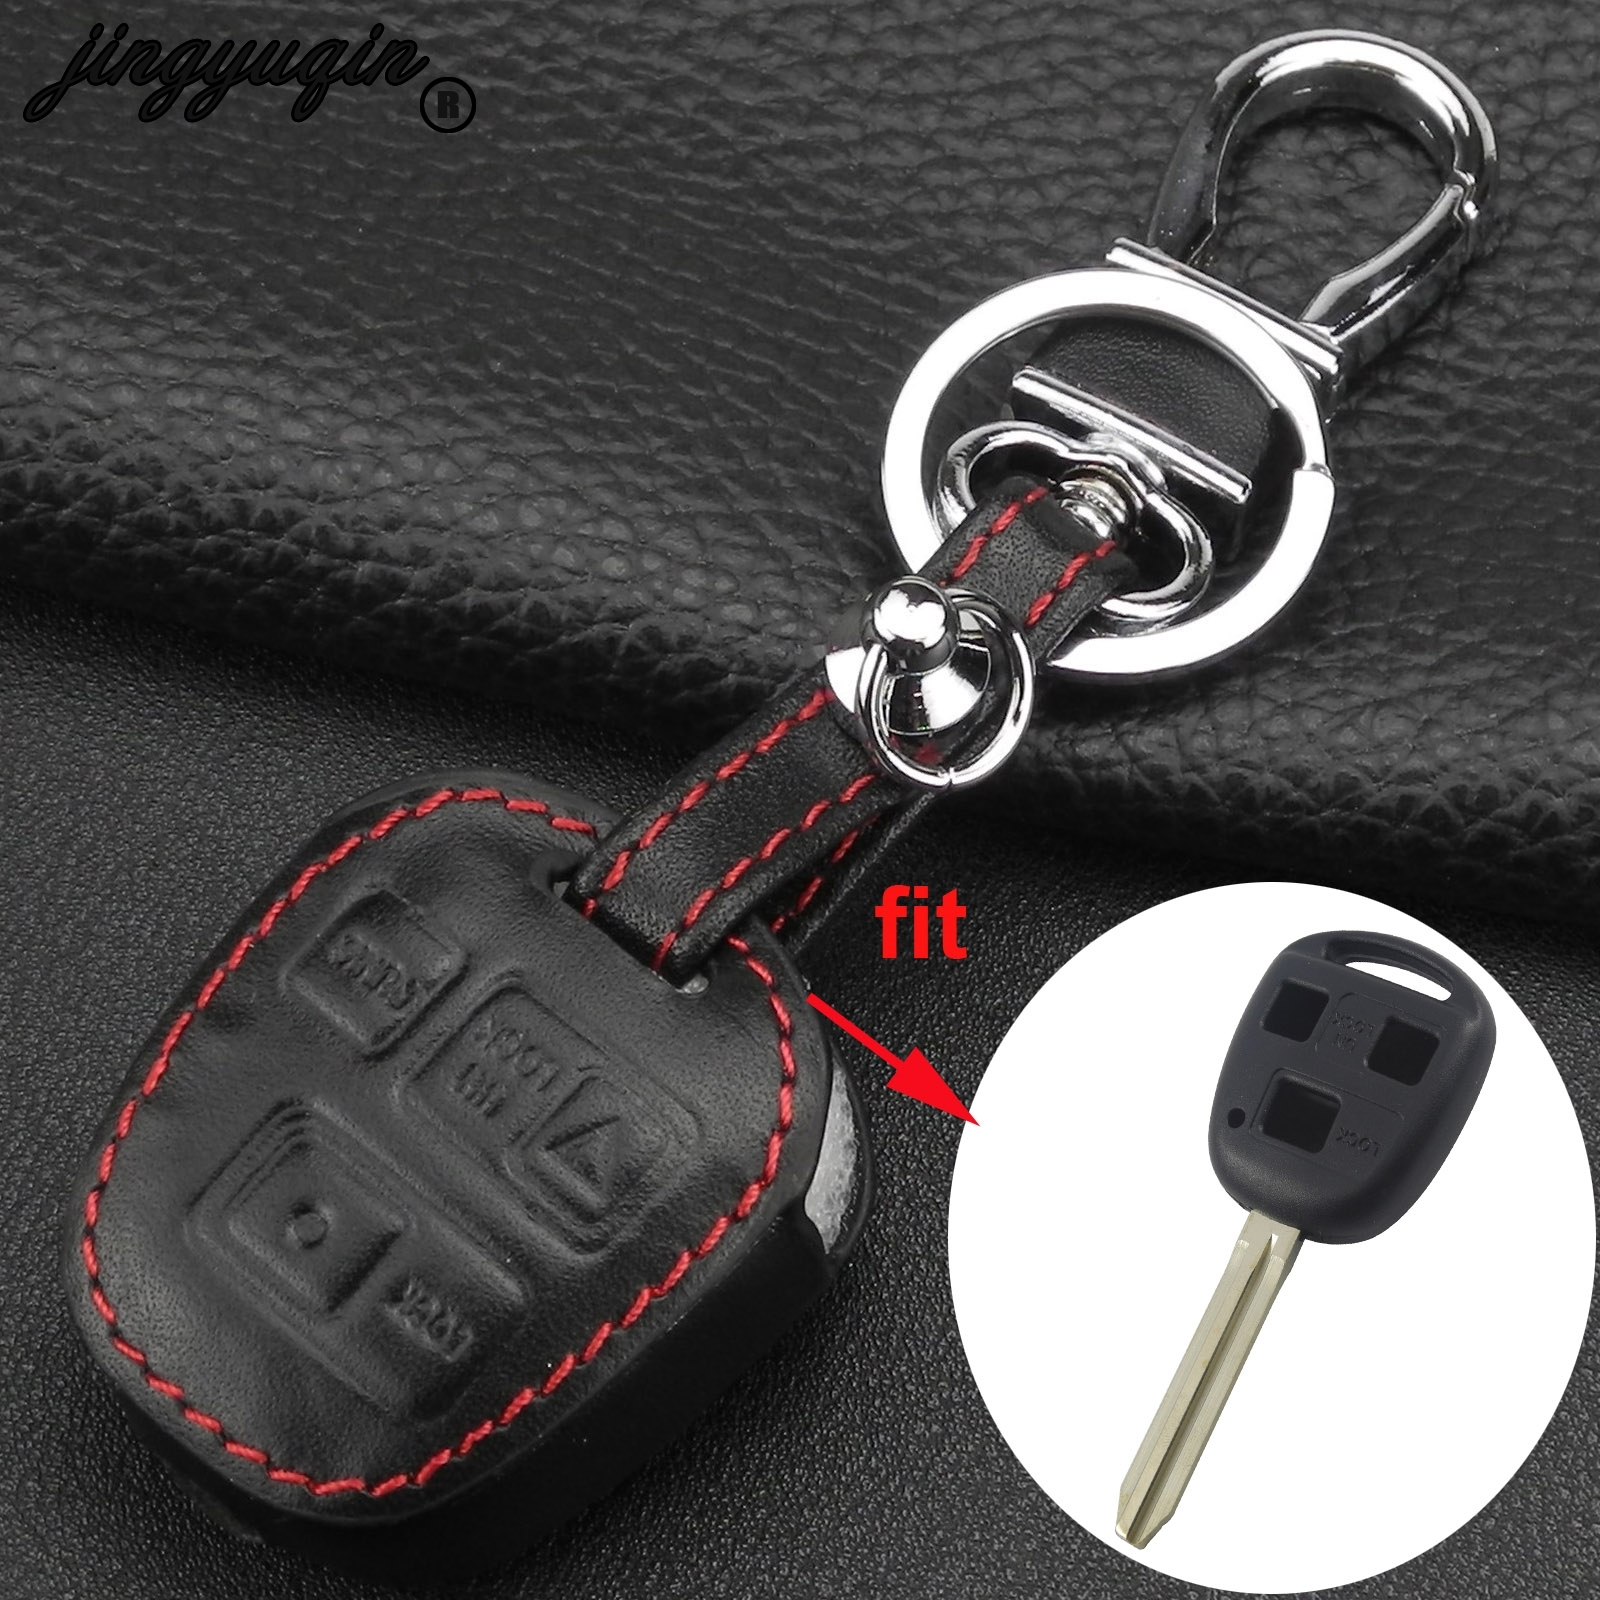 jingyuqin Leather Remote Car <font><b>Key</b></font> <font><b>Case</b></font> Cover For Toyota Tarago RAV4 Corolla Camry Celica Avalon for <font><b>Lexus</b></font> IS200 GS300 LS400 <font><b>RX300</b></font> image